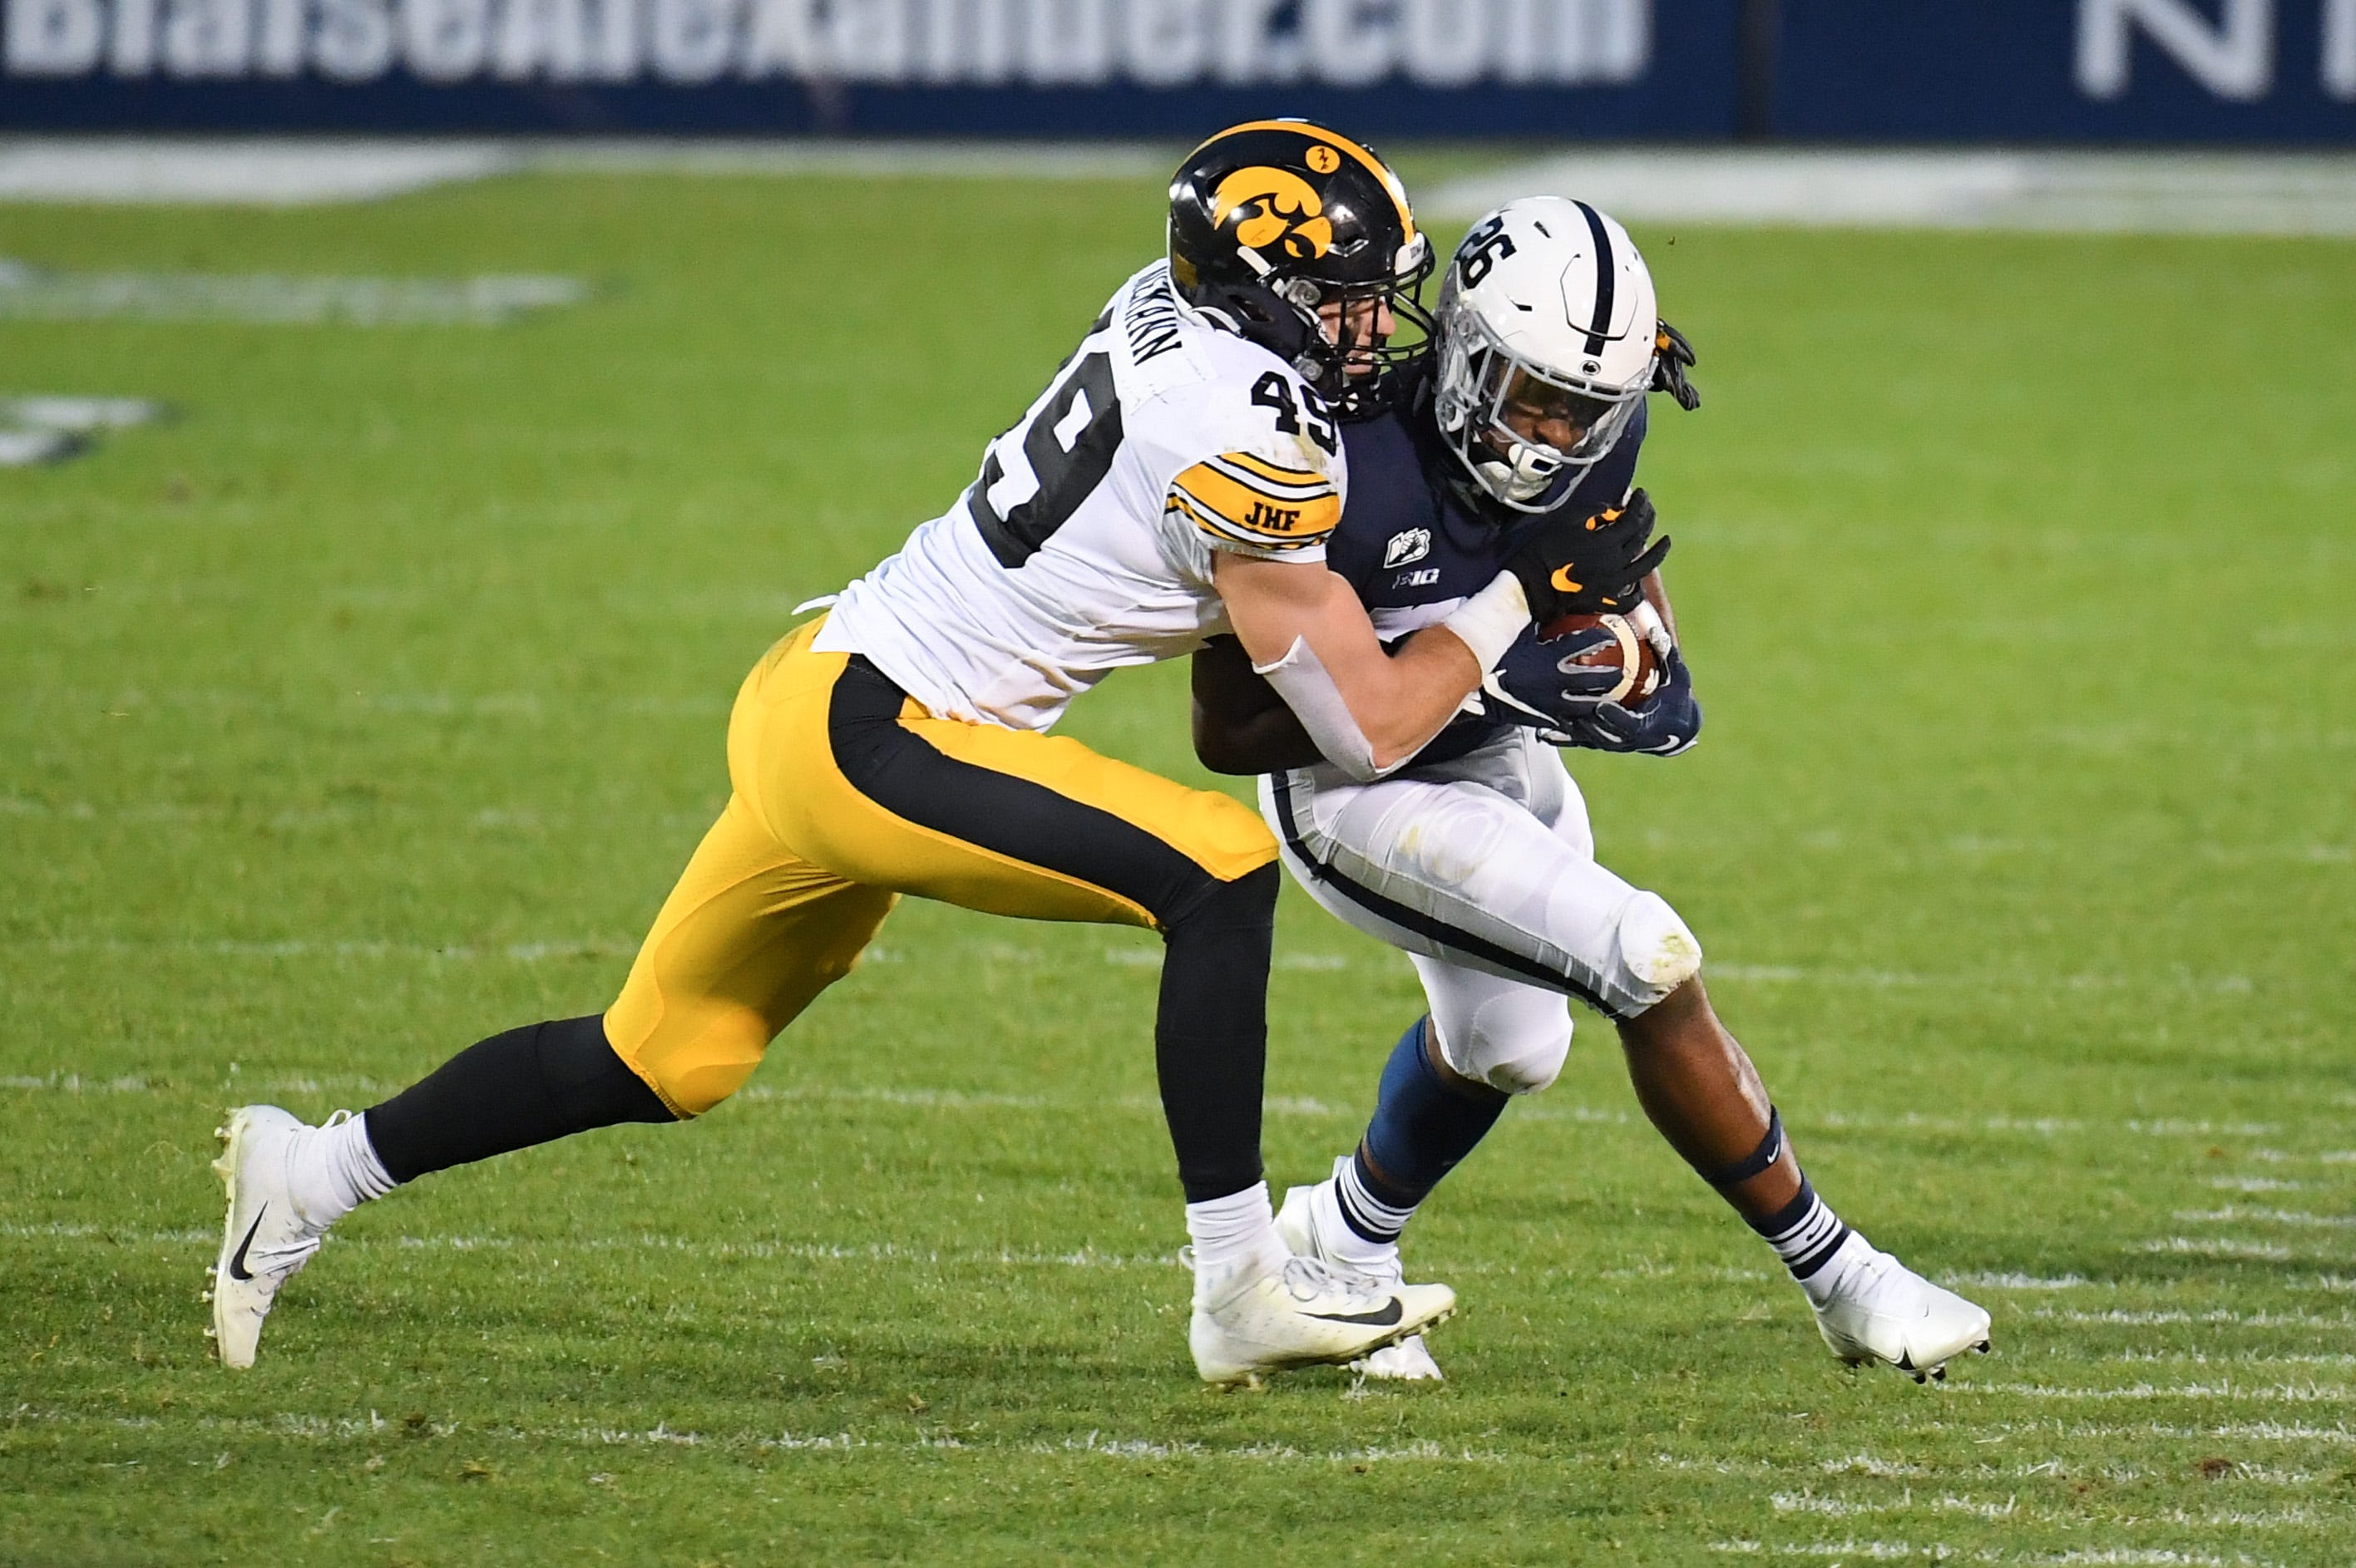 Penn State flops against Iowa to fall to 0-5 for first time in program history